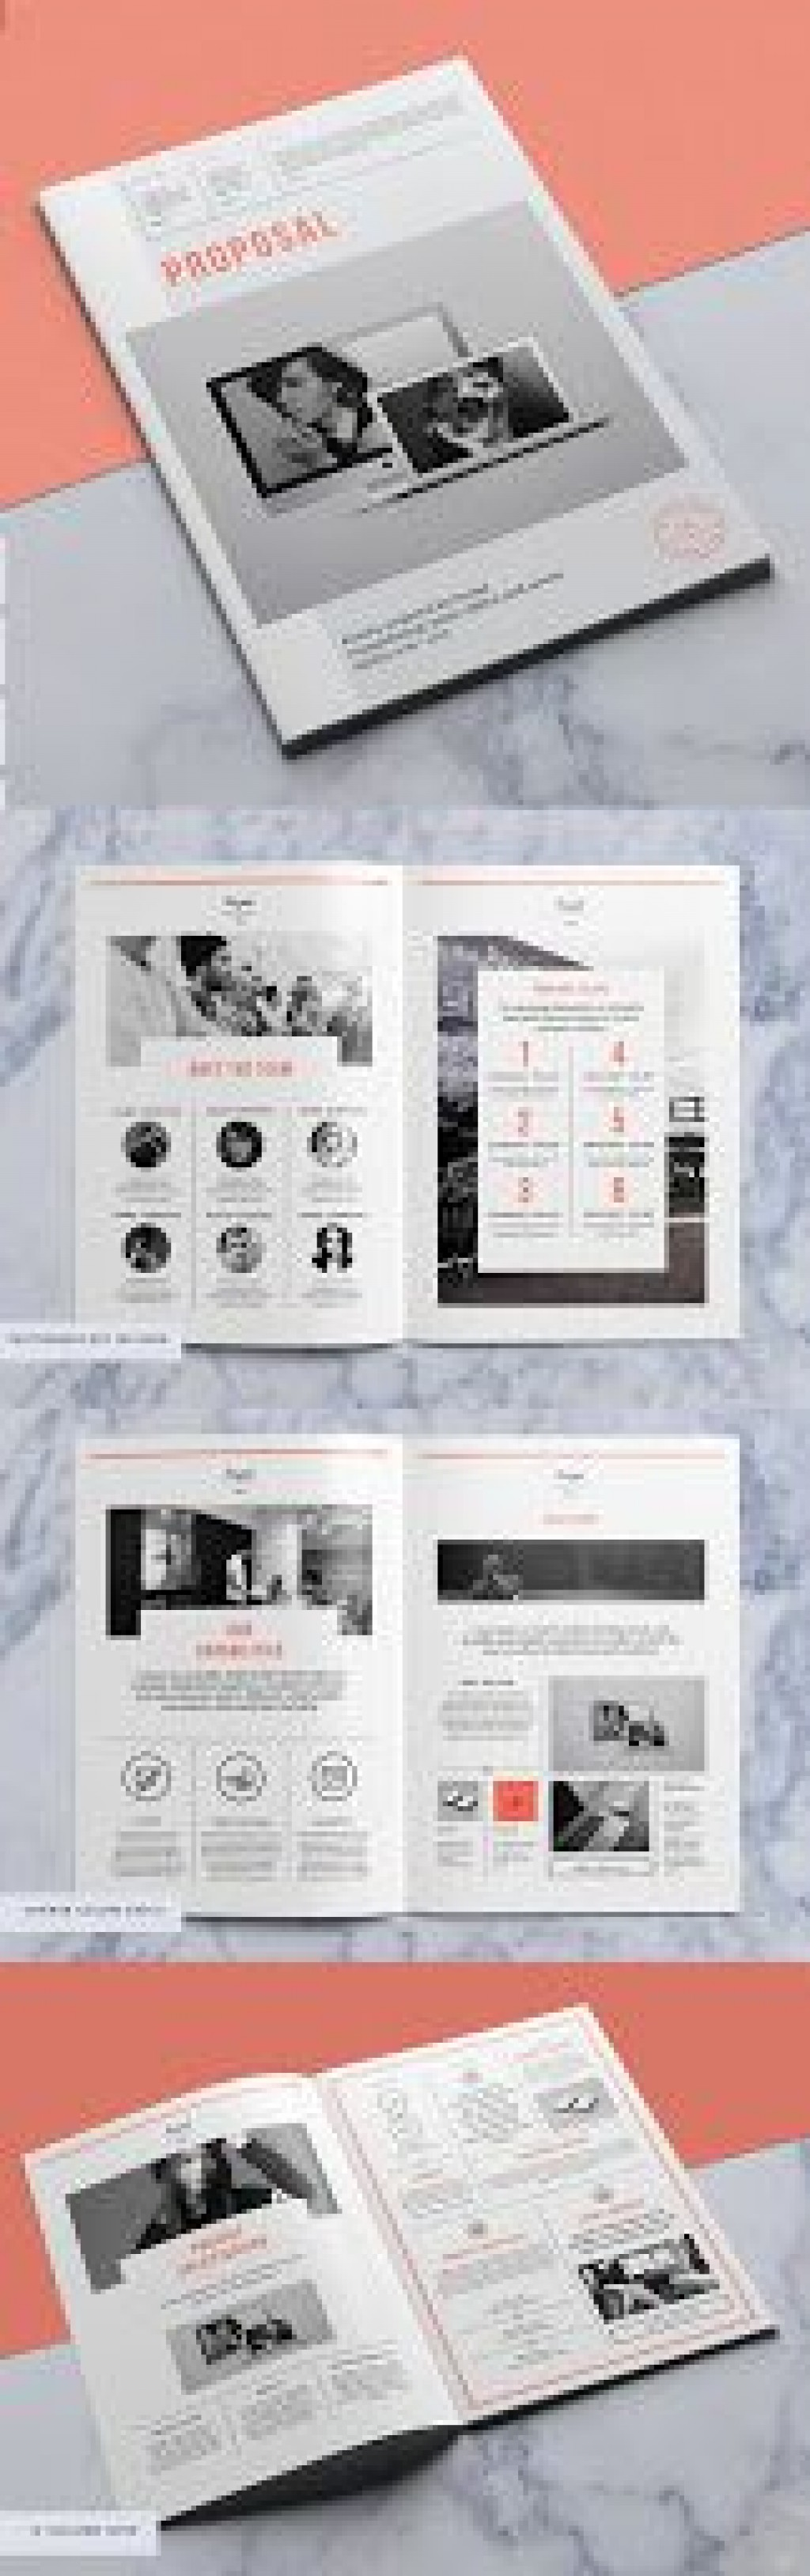 000 Simple Free Busines Proposal Template Indesign Design Large